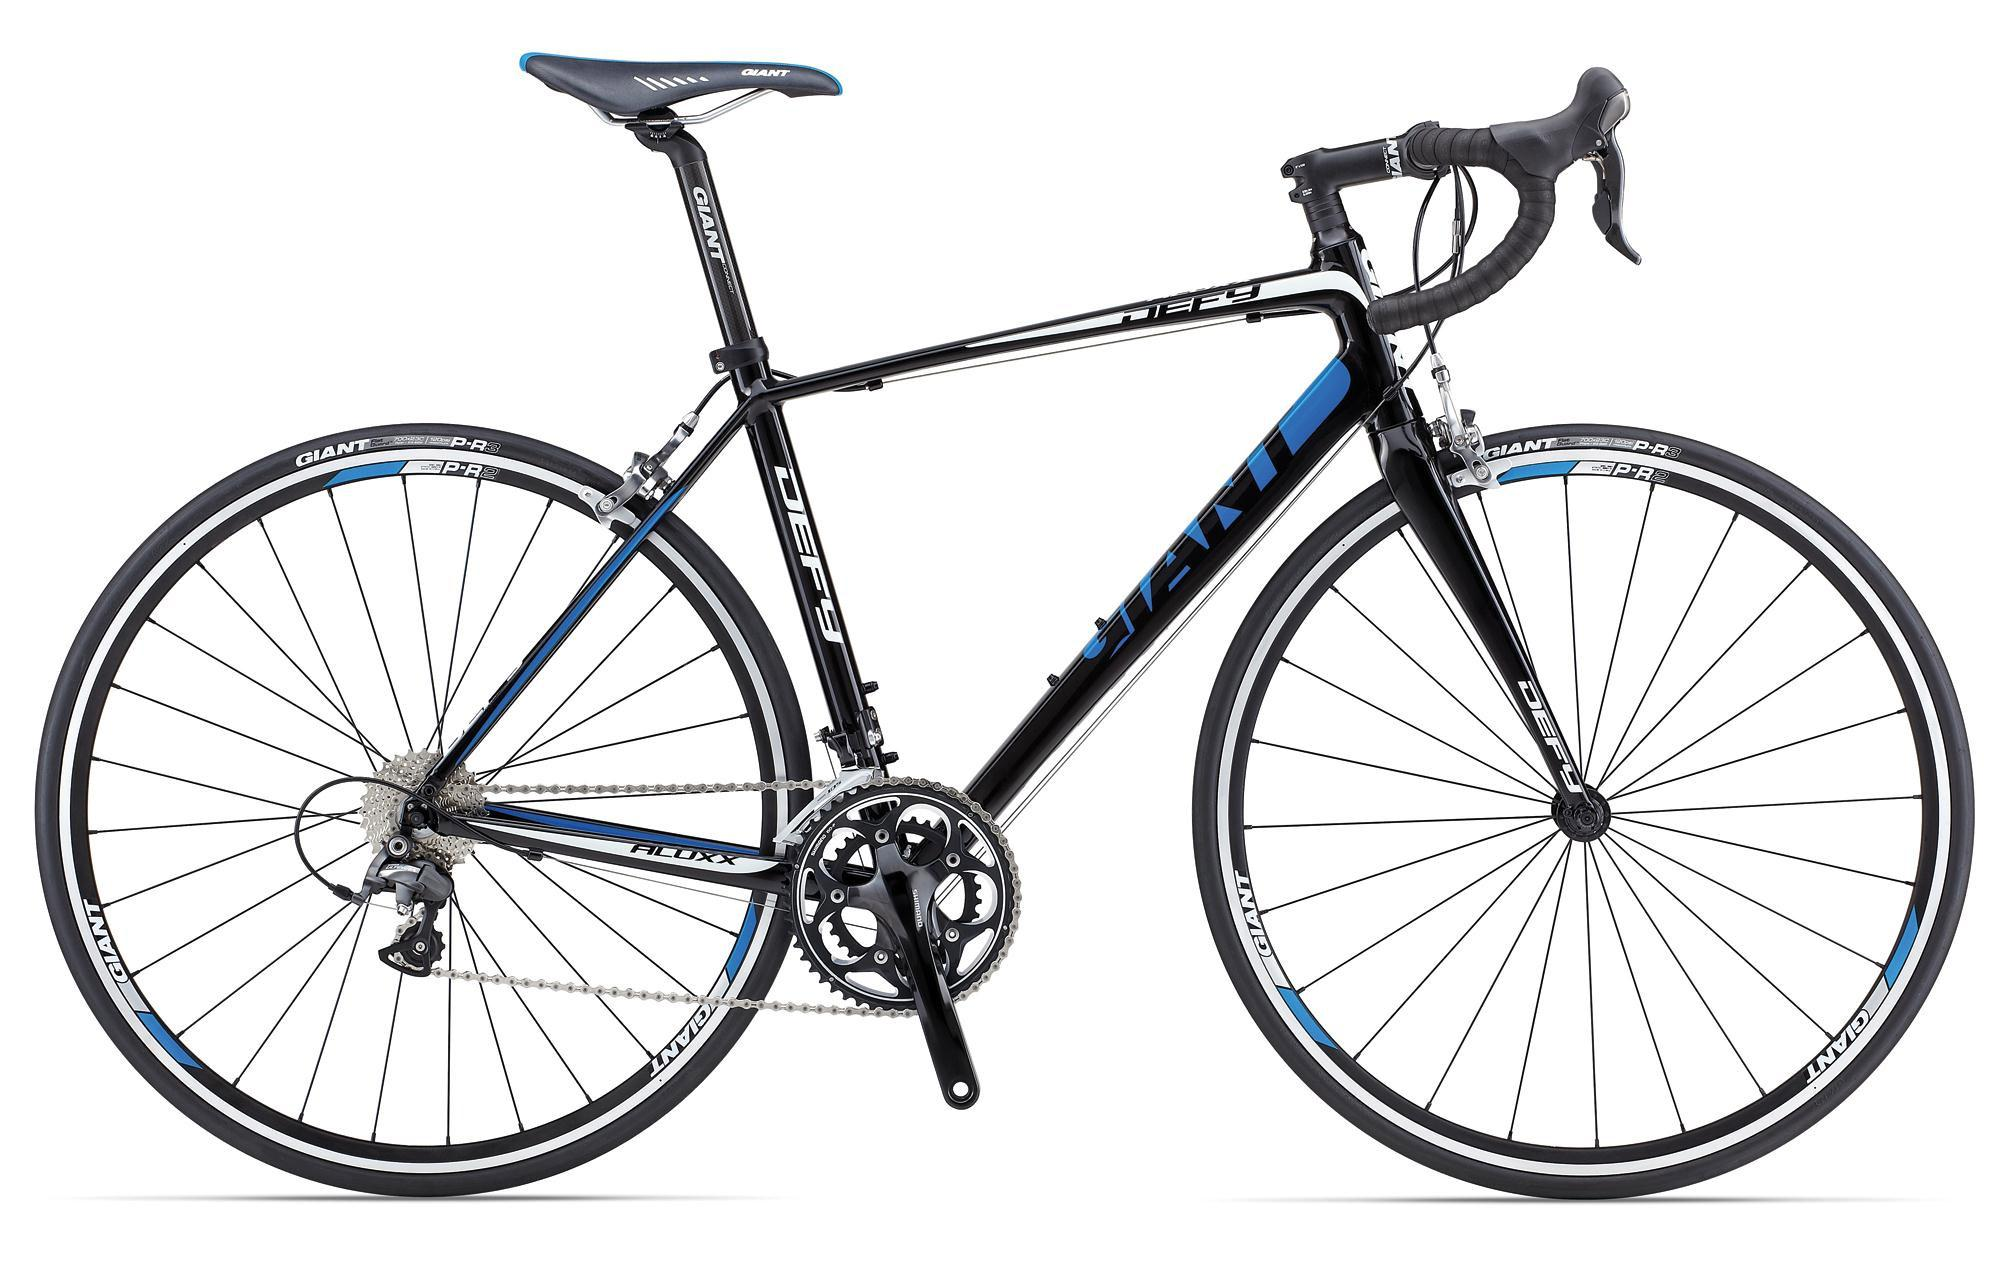 2013 Giant Defy 0 Limited Edition (Compact) Black